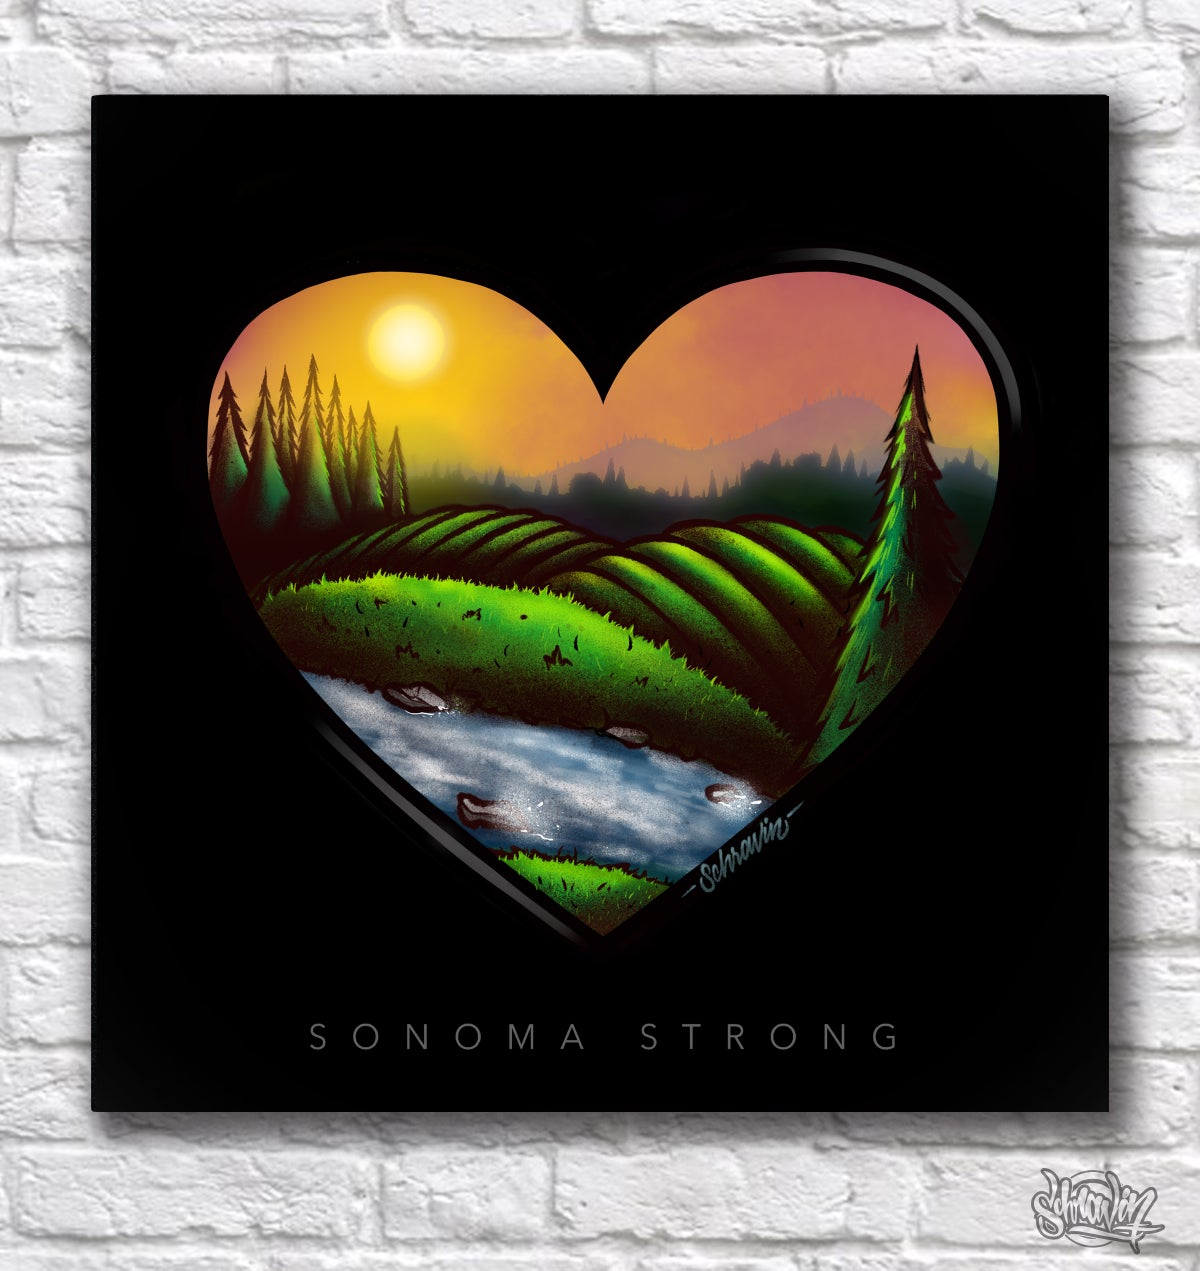 Image of Sonoma Strong canvas print